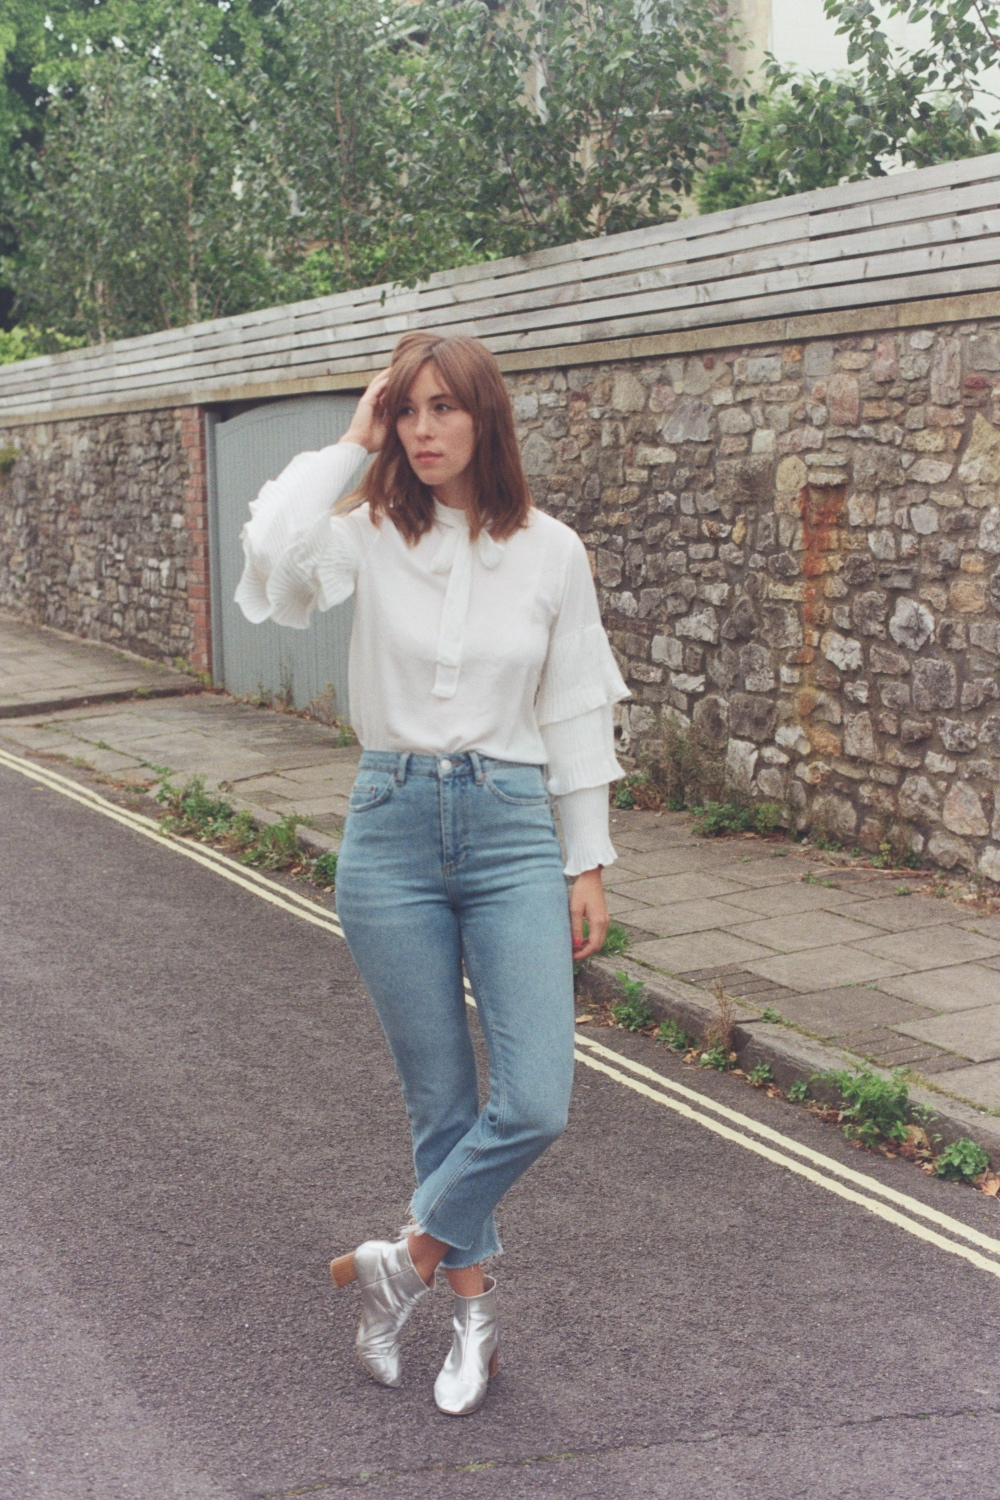 Fashion on film - experimenting with film photography for outfit posts